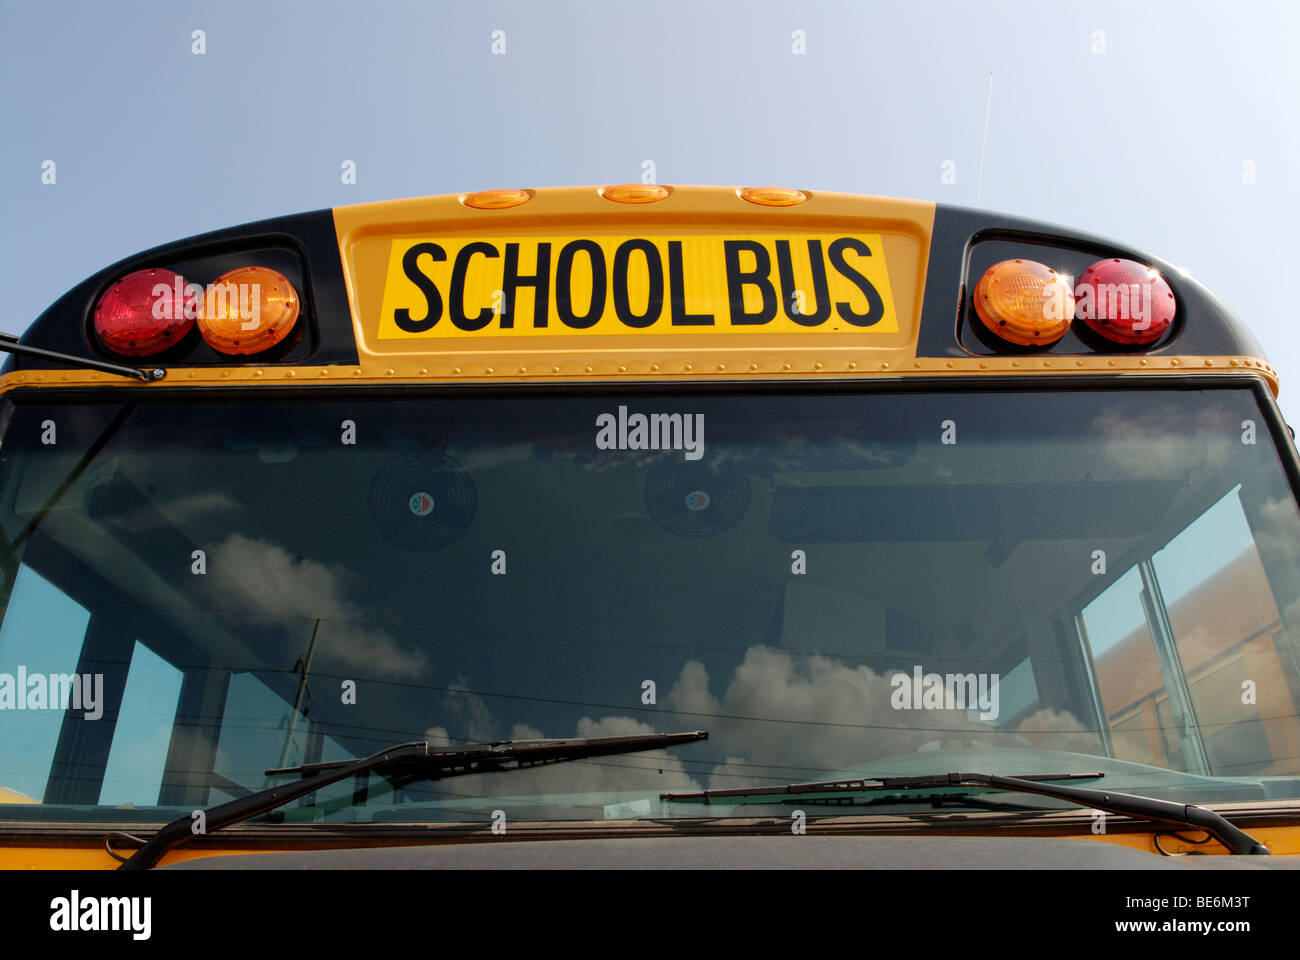 School bus front view - Stock Image